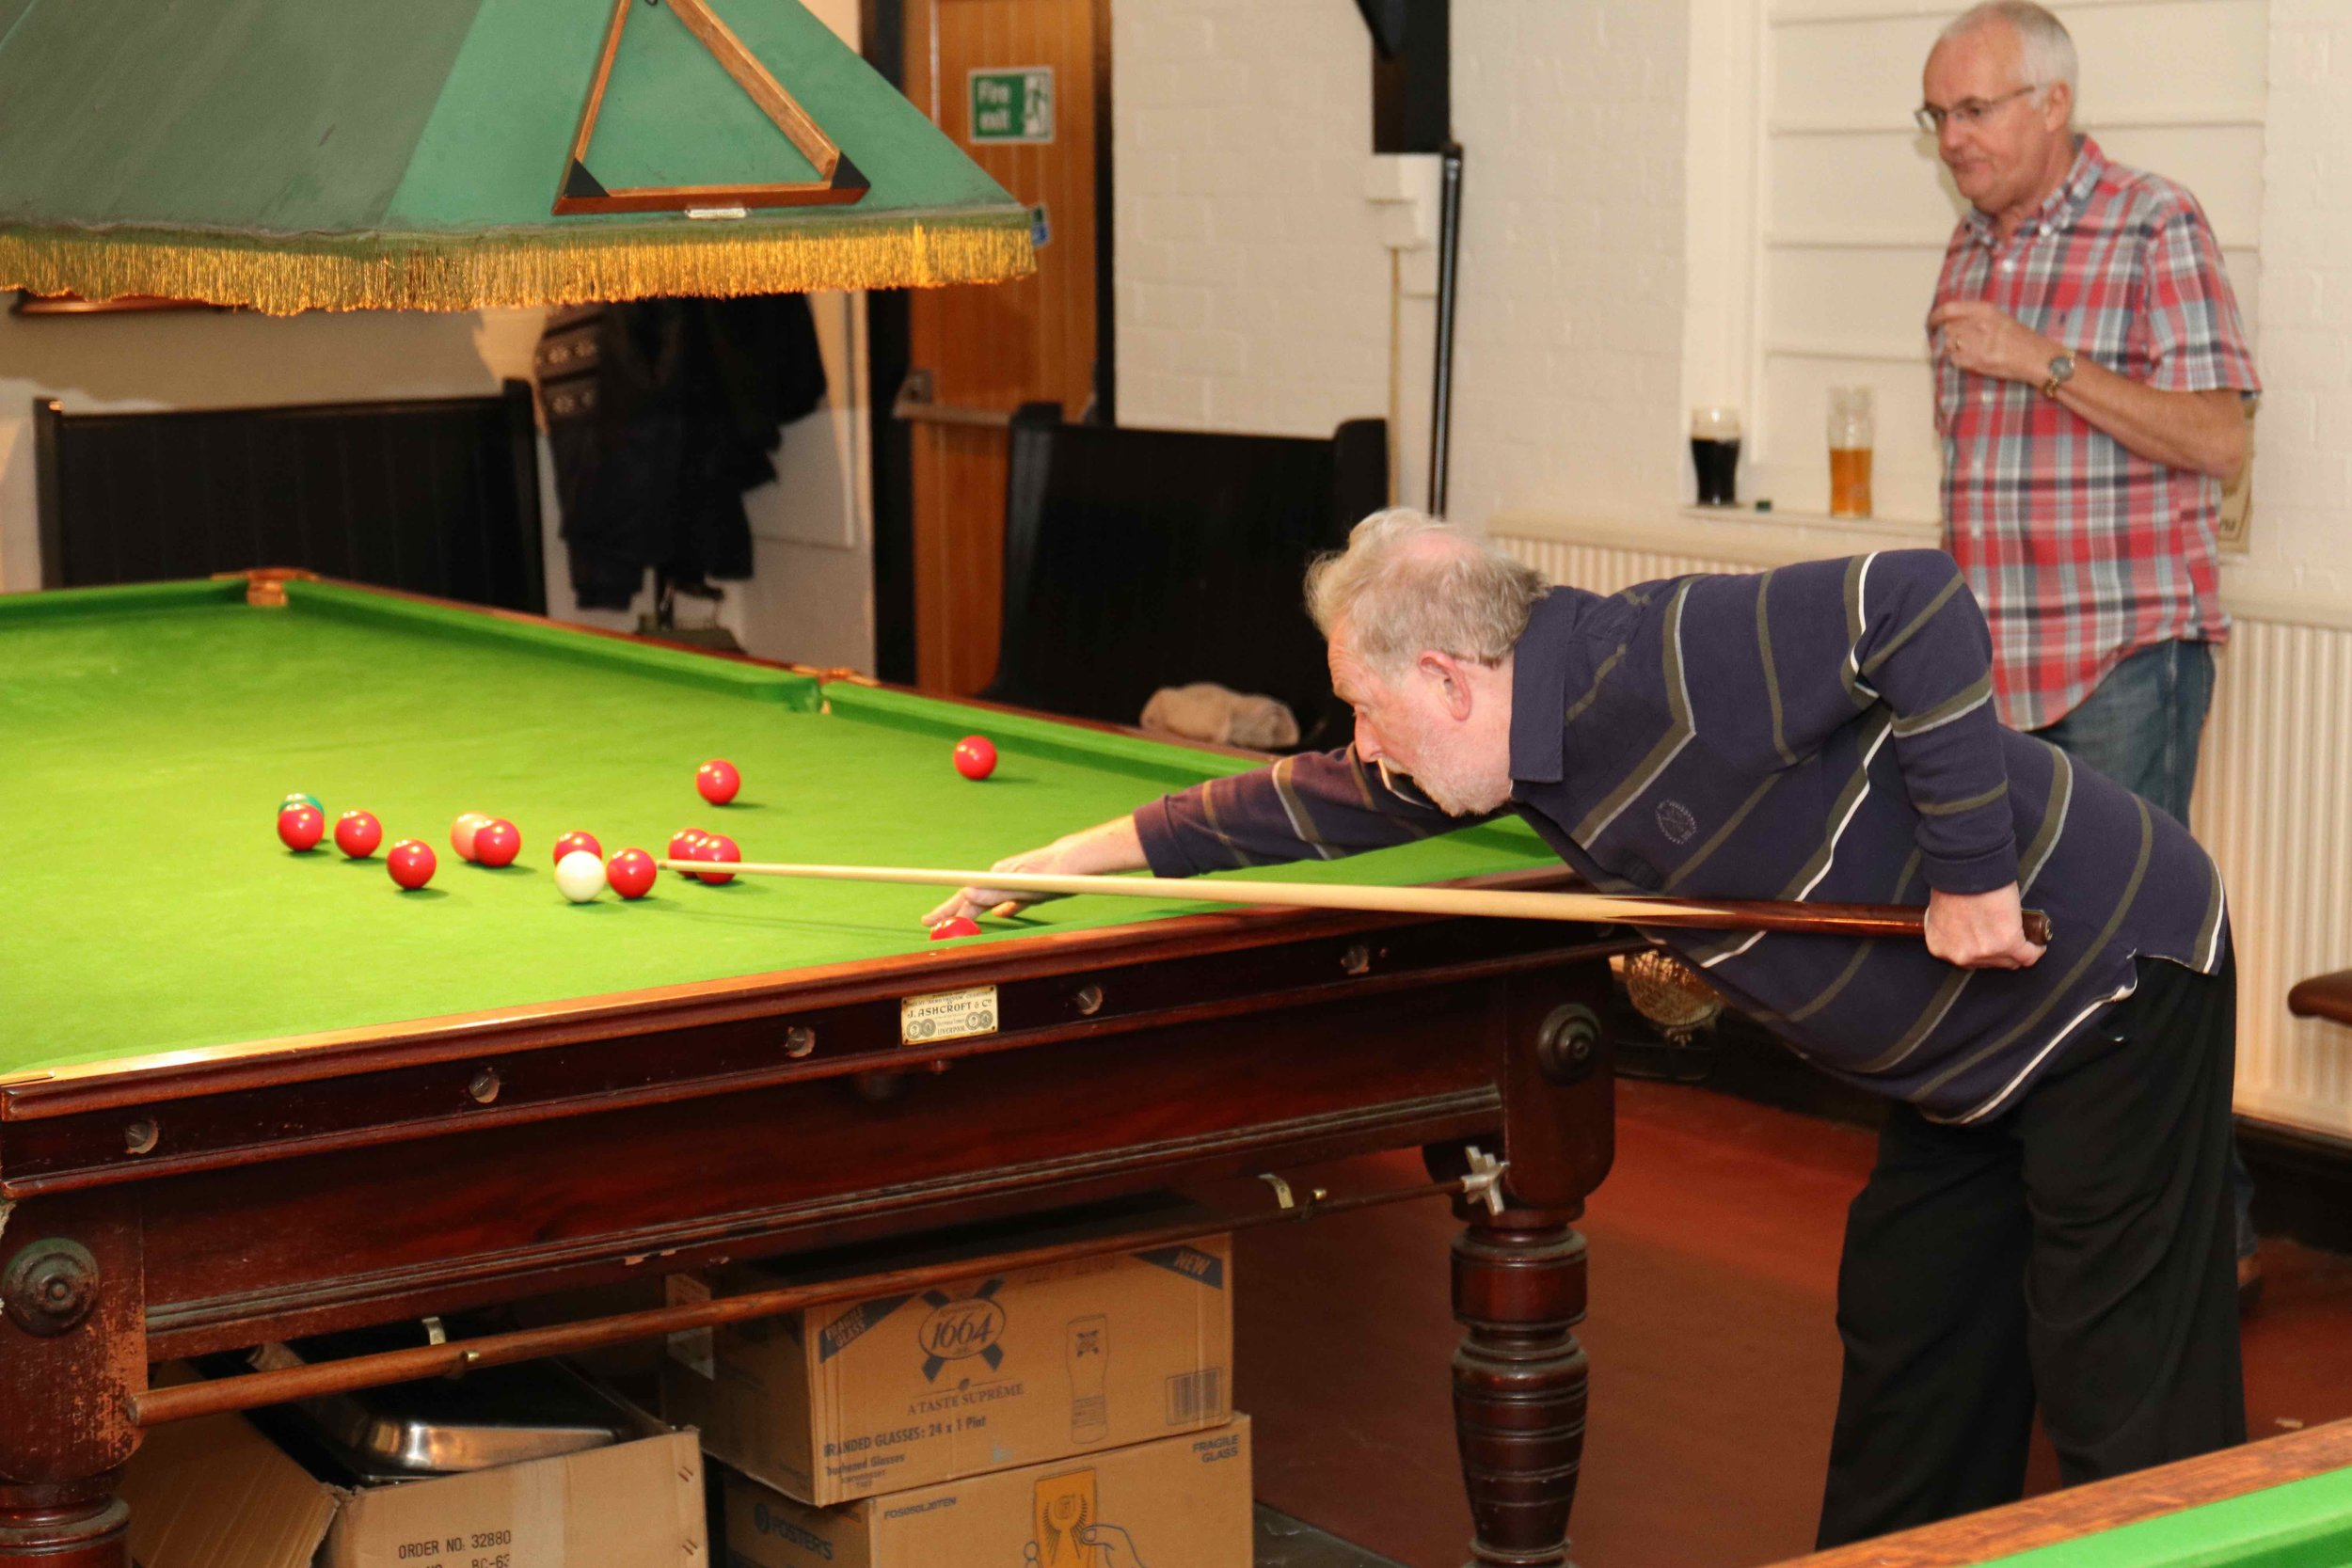 Man playing snooker at the Hall